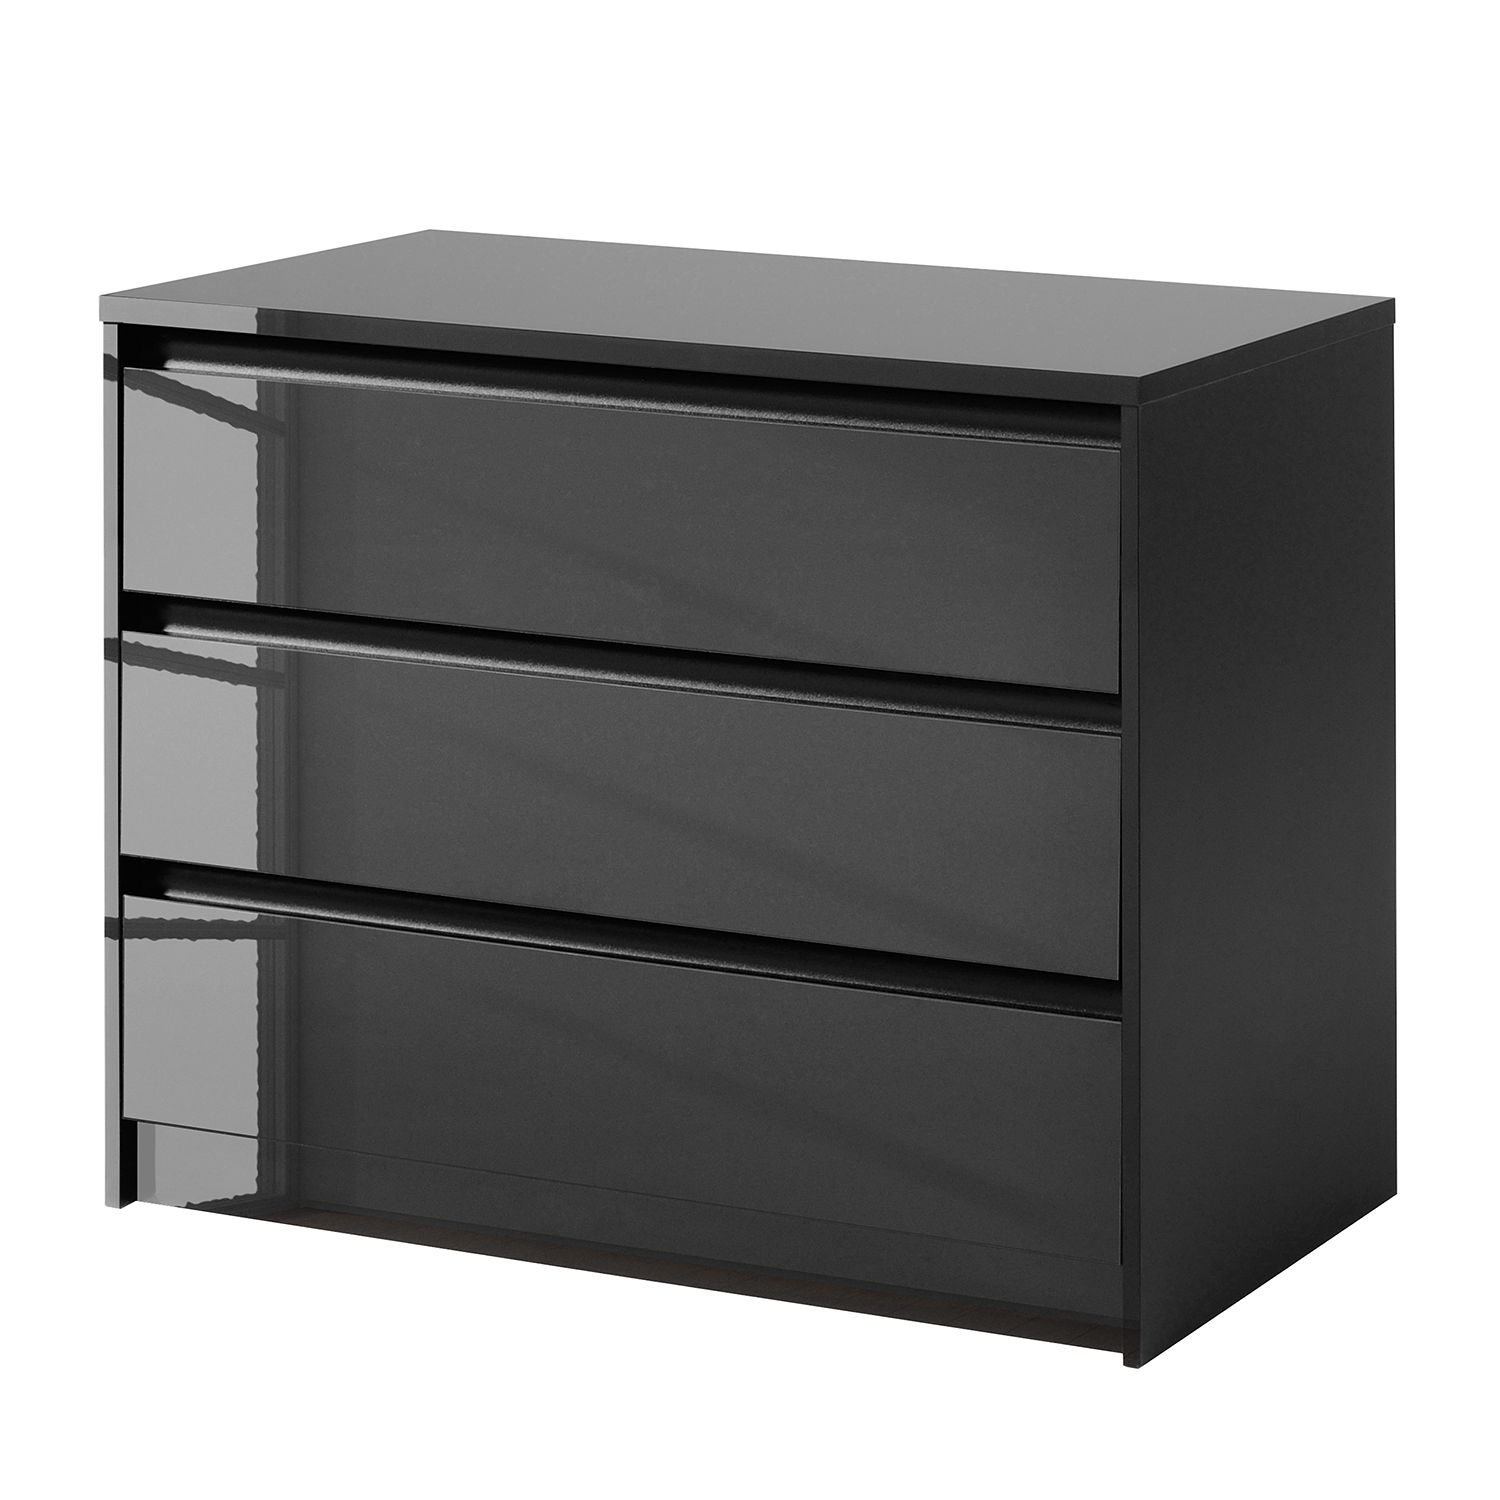 kommode hochglanz schwarz preisvergleiche erfahrungsberichte und kauf bei nextag. Black Bedroom Furniture Sets. Home Design Ideas